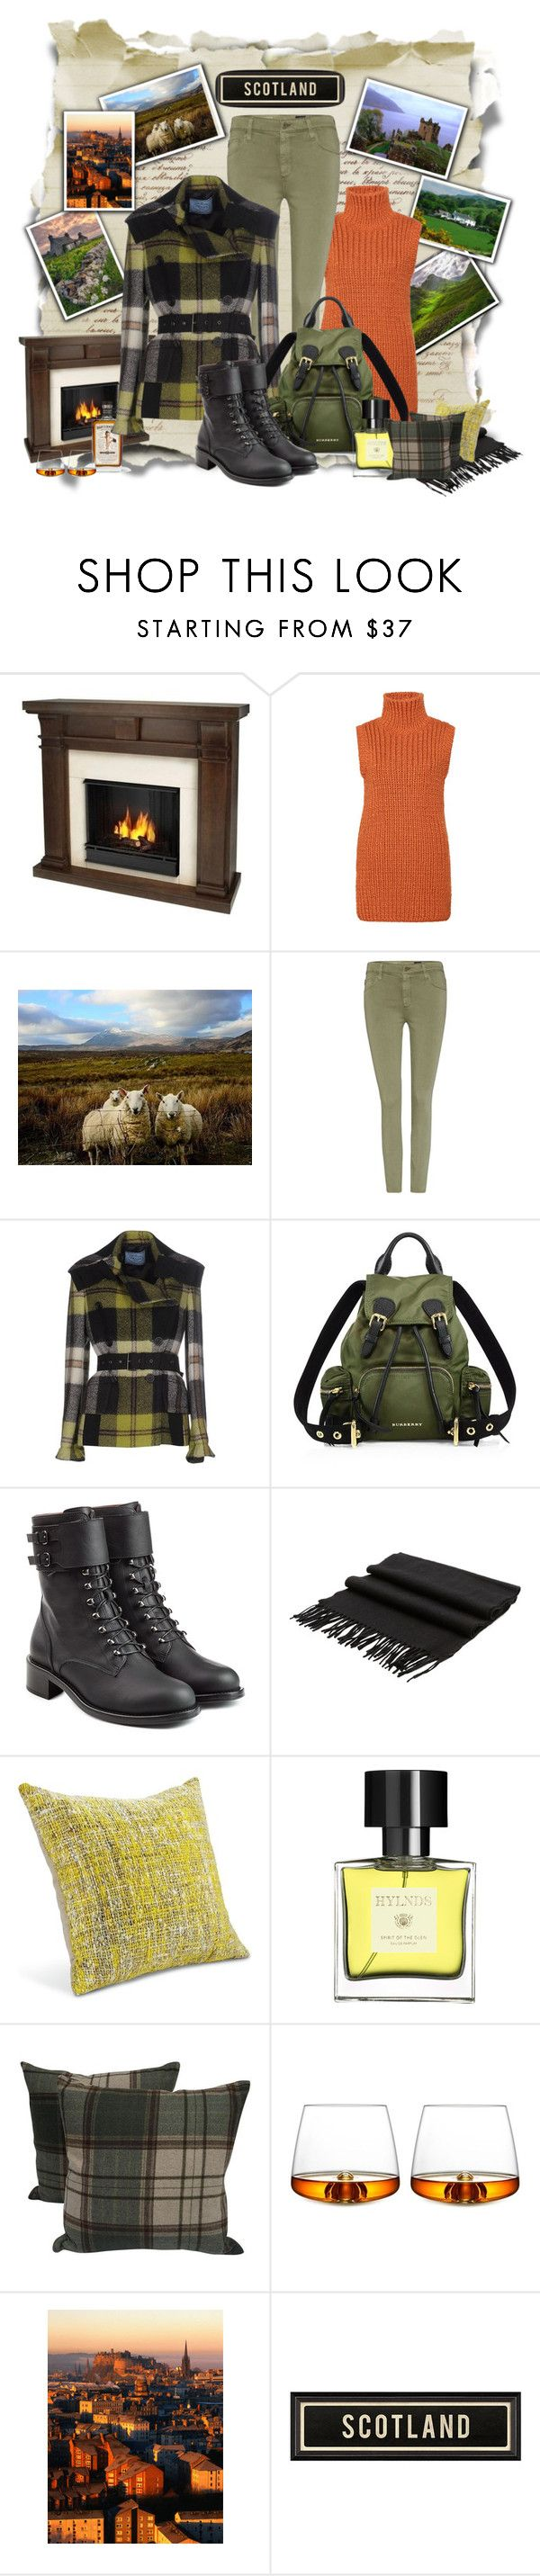 """""""If I were on a Tartan Tour..."""" by pomy22 ❤ liked on Polyvore featuring Lonely Planet, Real Flame, AG Adriano Goldschmied, Prada, Burberry, Philosophy di Lorenzo Serafini, Begg & Co, Hylnds, Normann Copenhagen and Boots"""